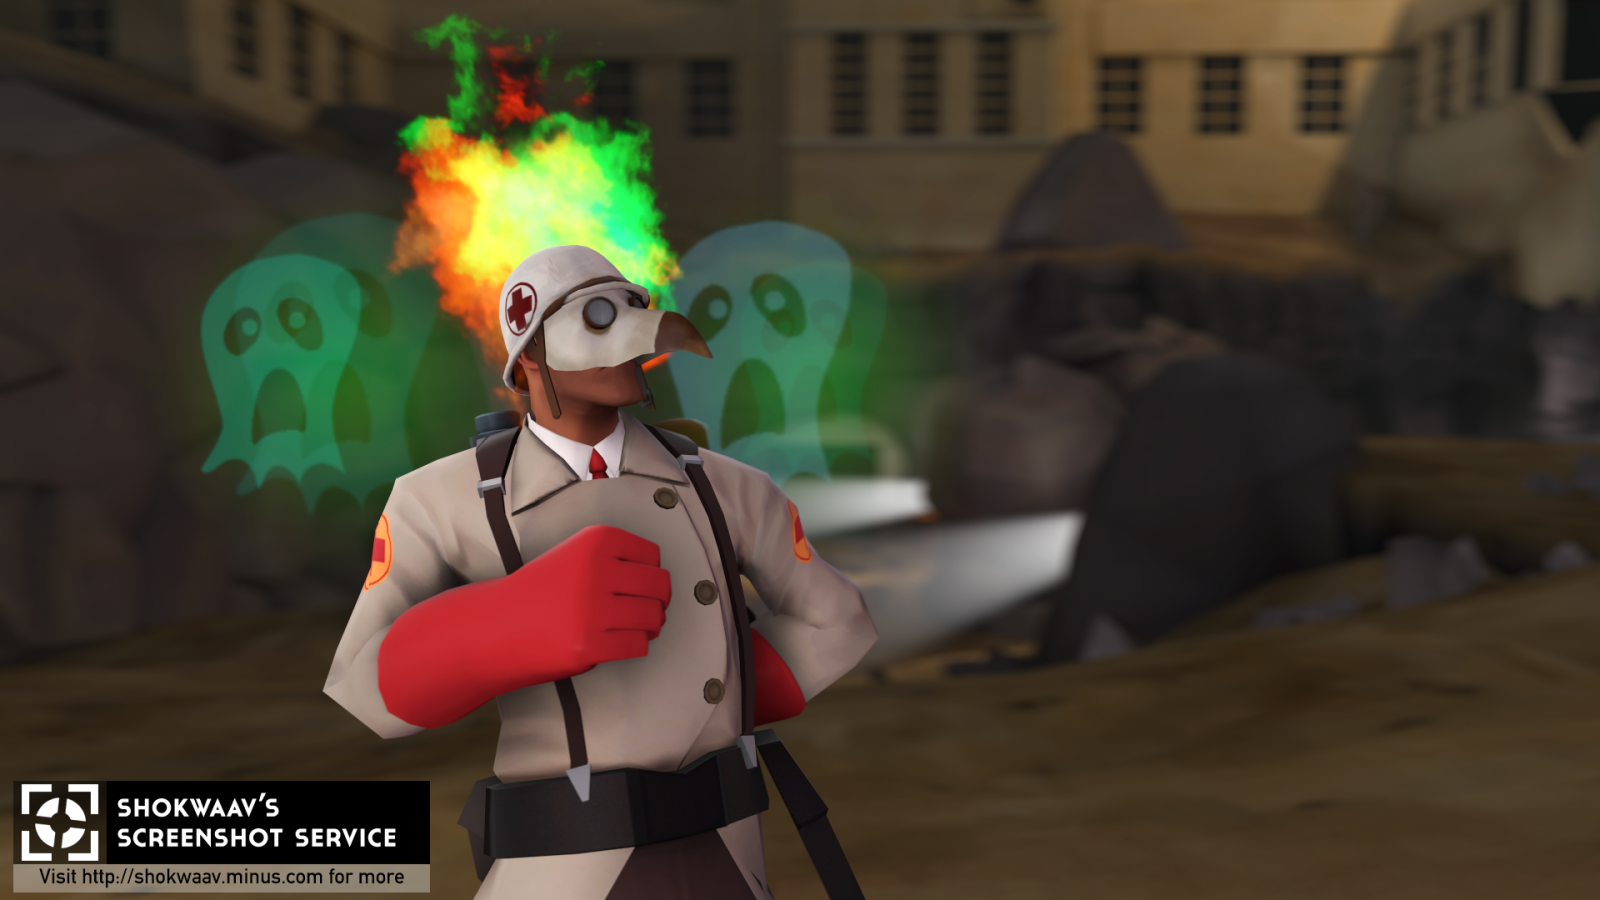 Tf2 soldier cosmetics quotes - Tf2 Soldier Cosmetics Quotes 51